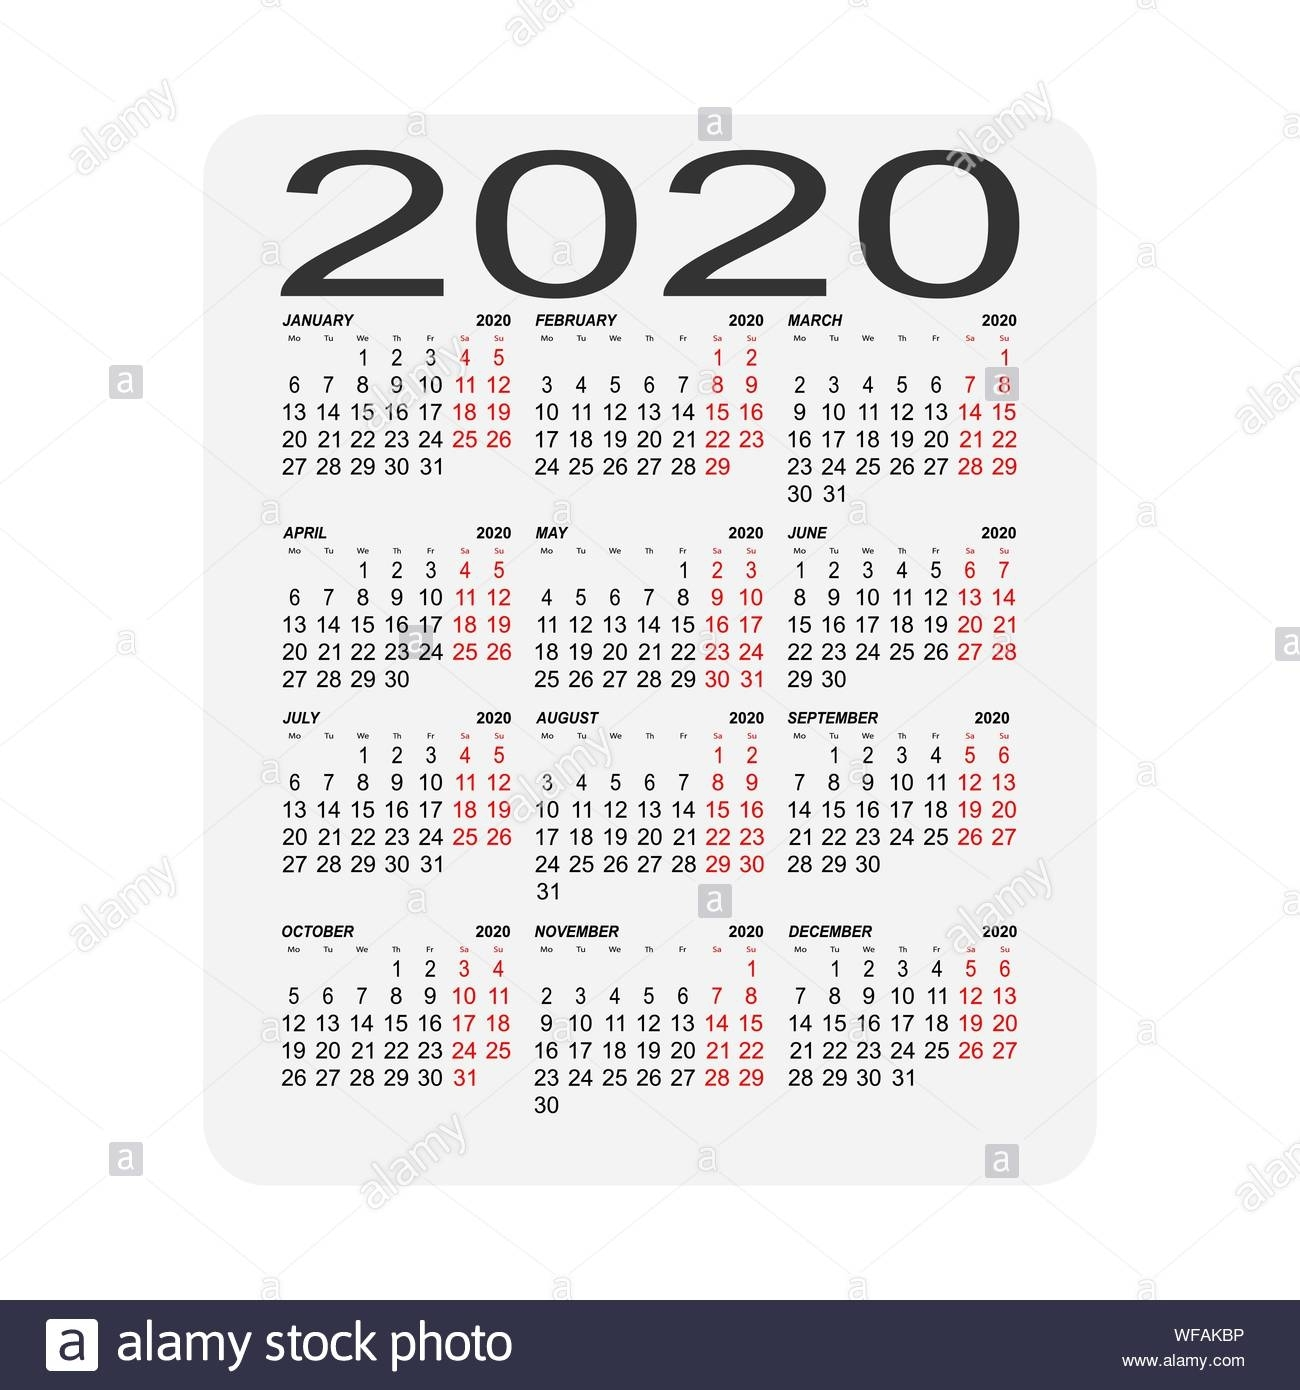 Calendar 2020. Calendar Sheet. Two Days Off A Week Stock pertaining to 2020 Calendar With Special Days